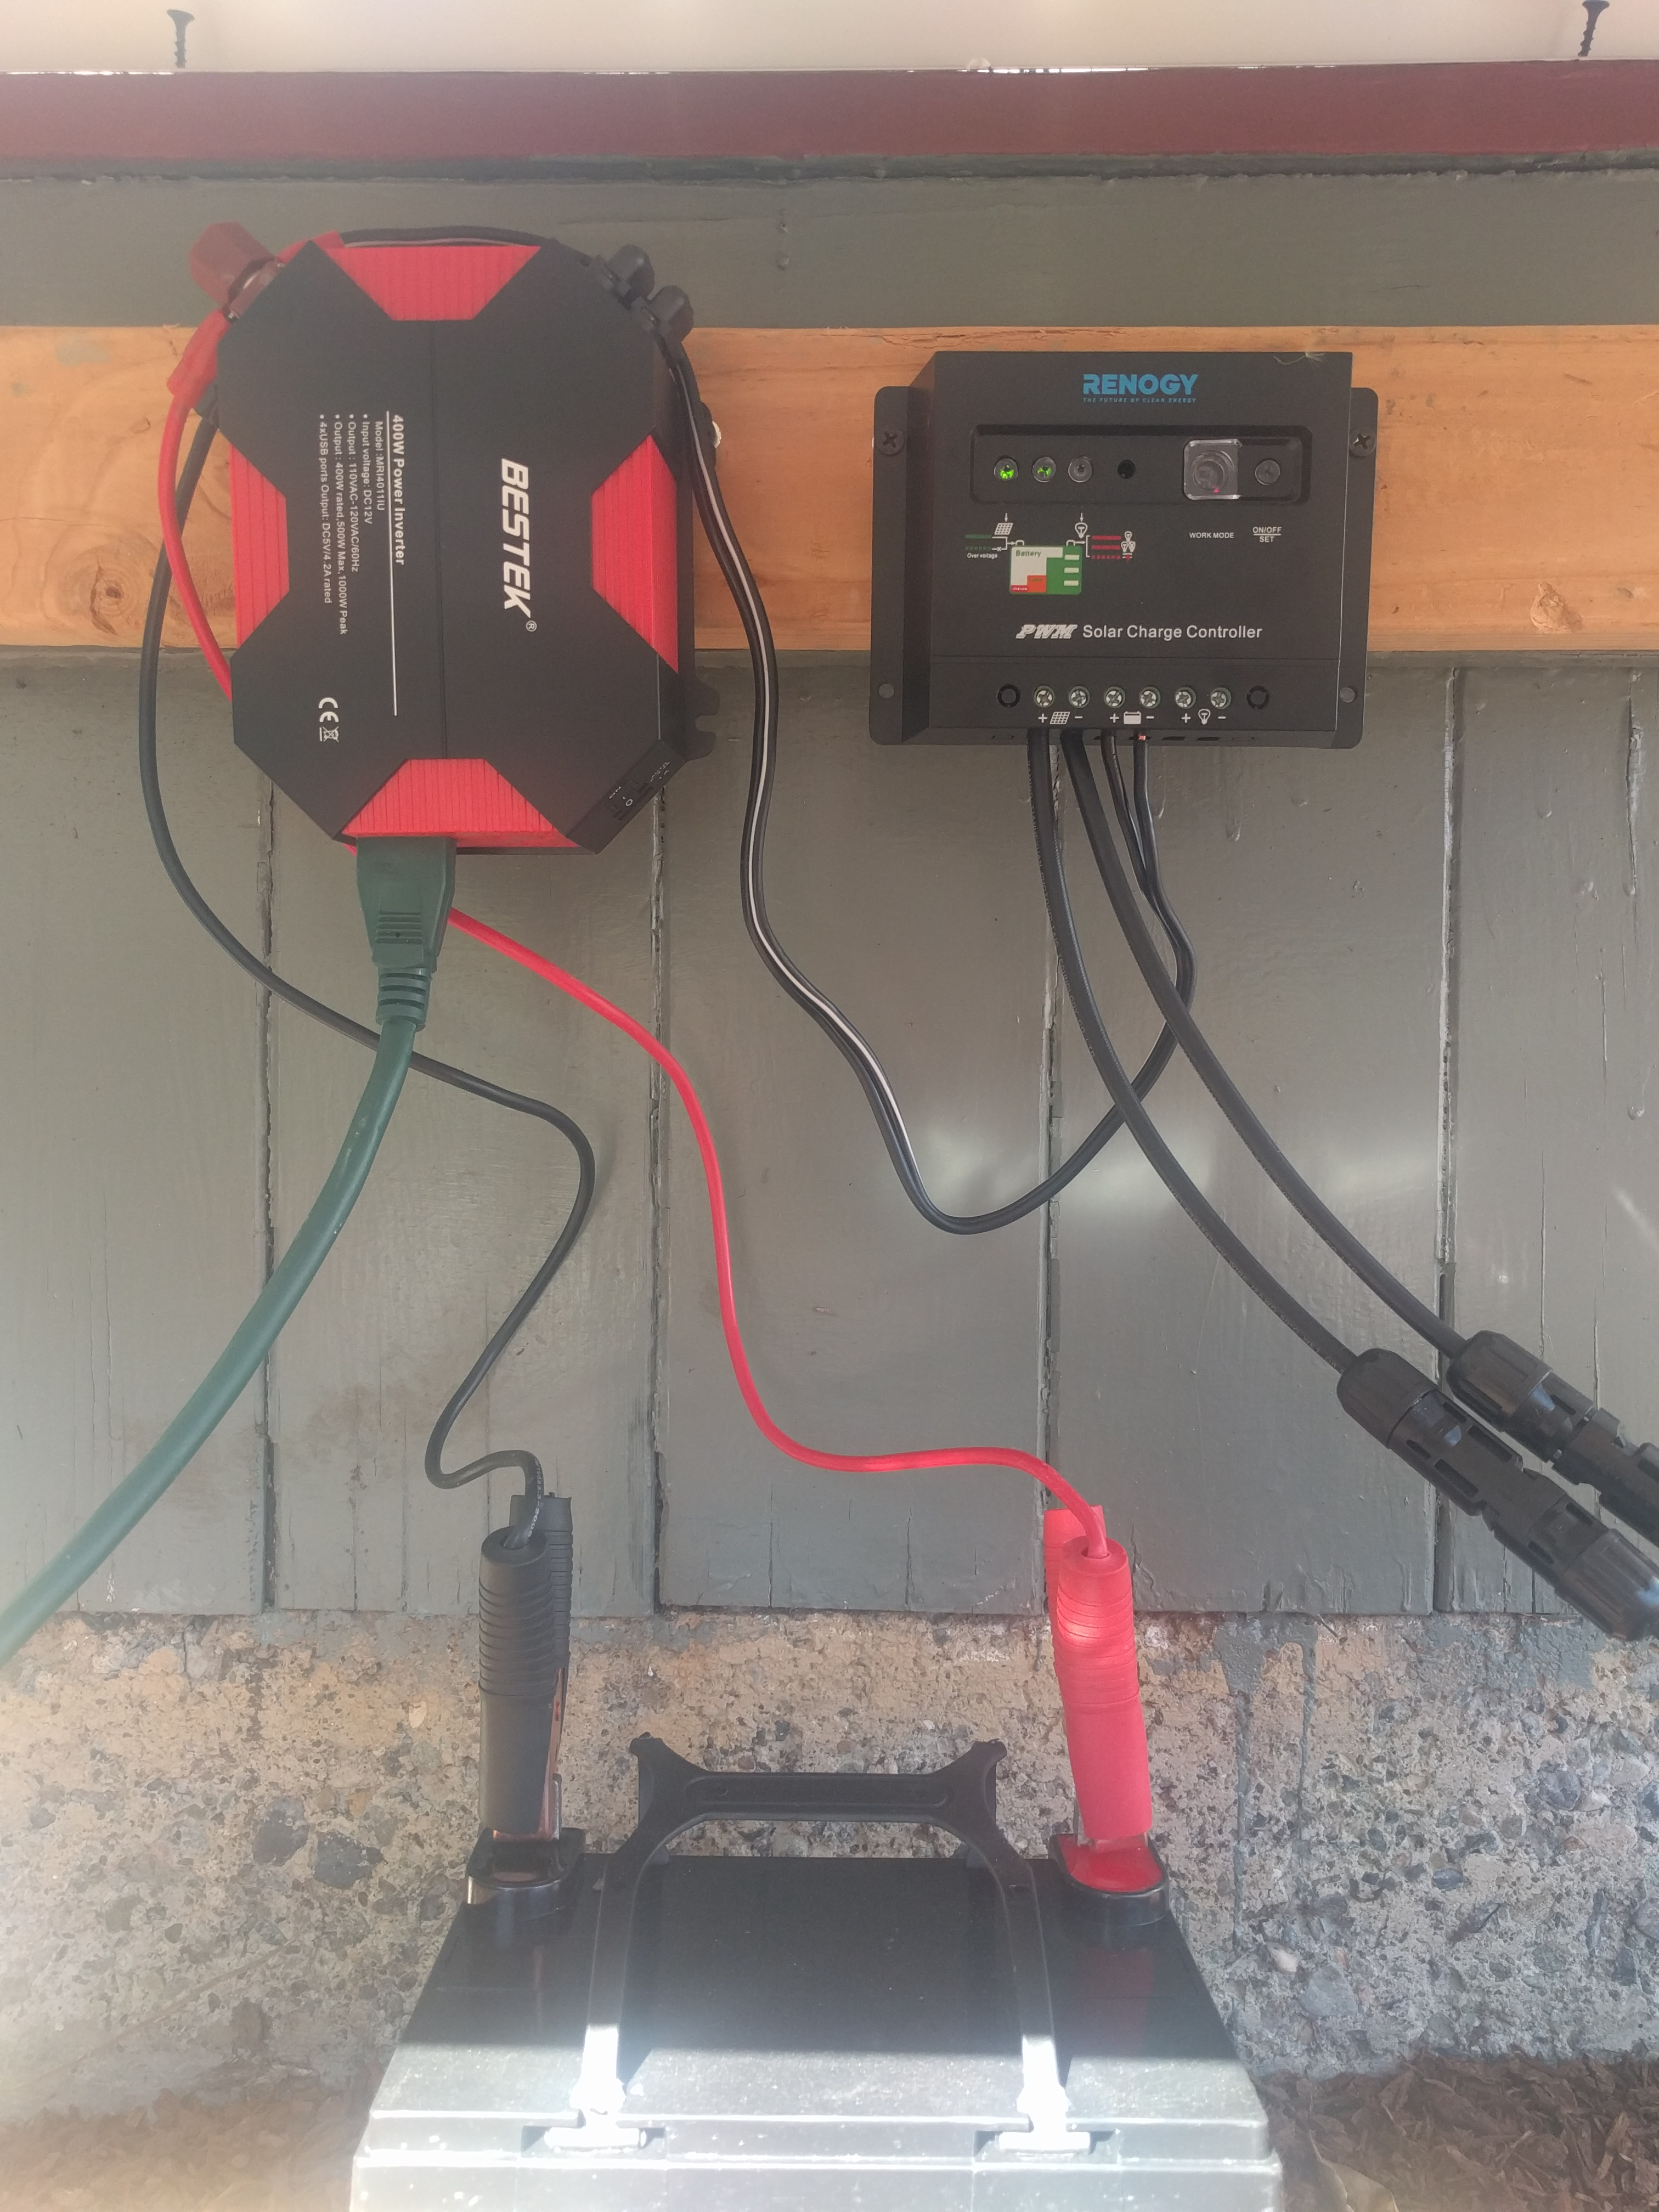 Solar panel hook up instructions